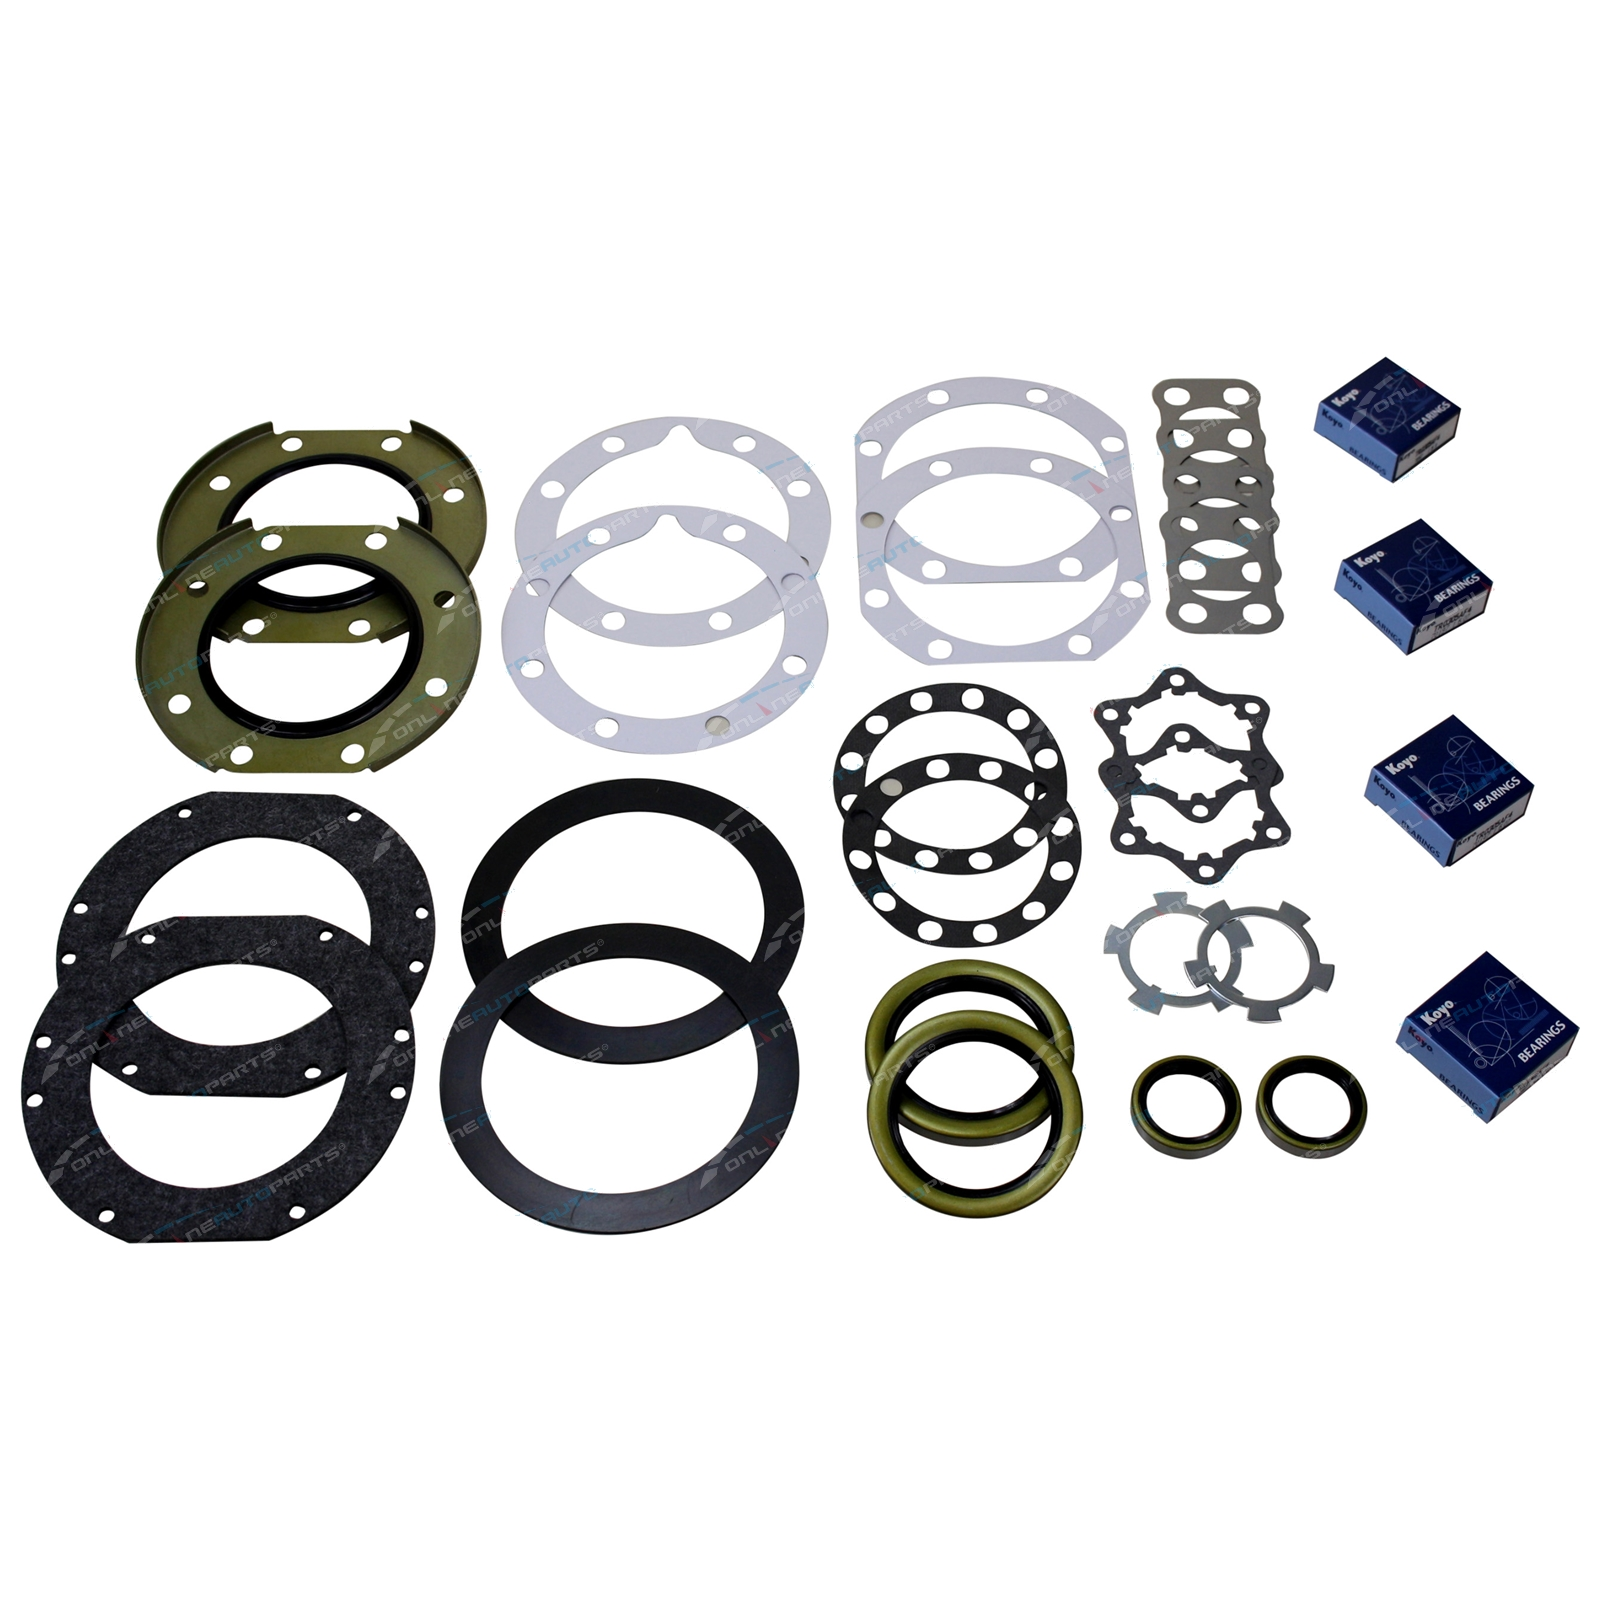 Swivel Hub Kit Bearing & Seal Repair suits Toyota Landcruiser FJ70 FJ73 FJ75 1985 to 1989